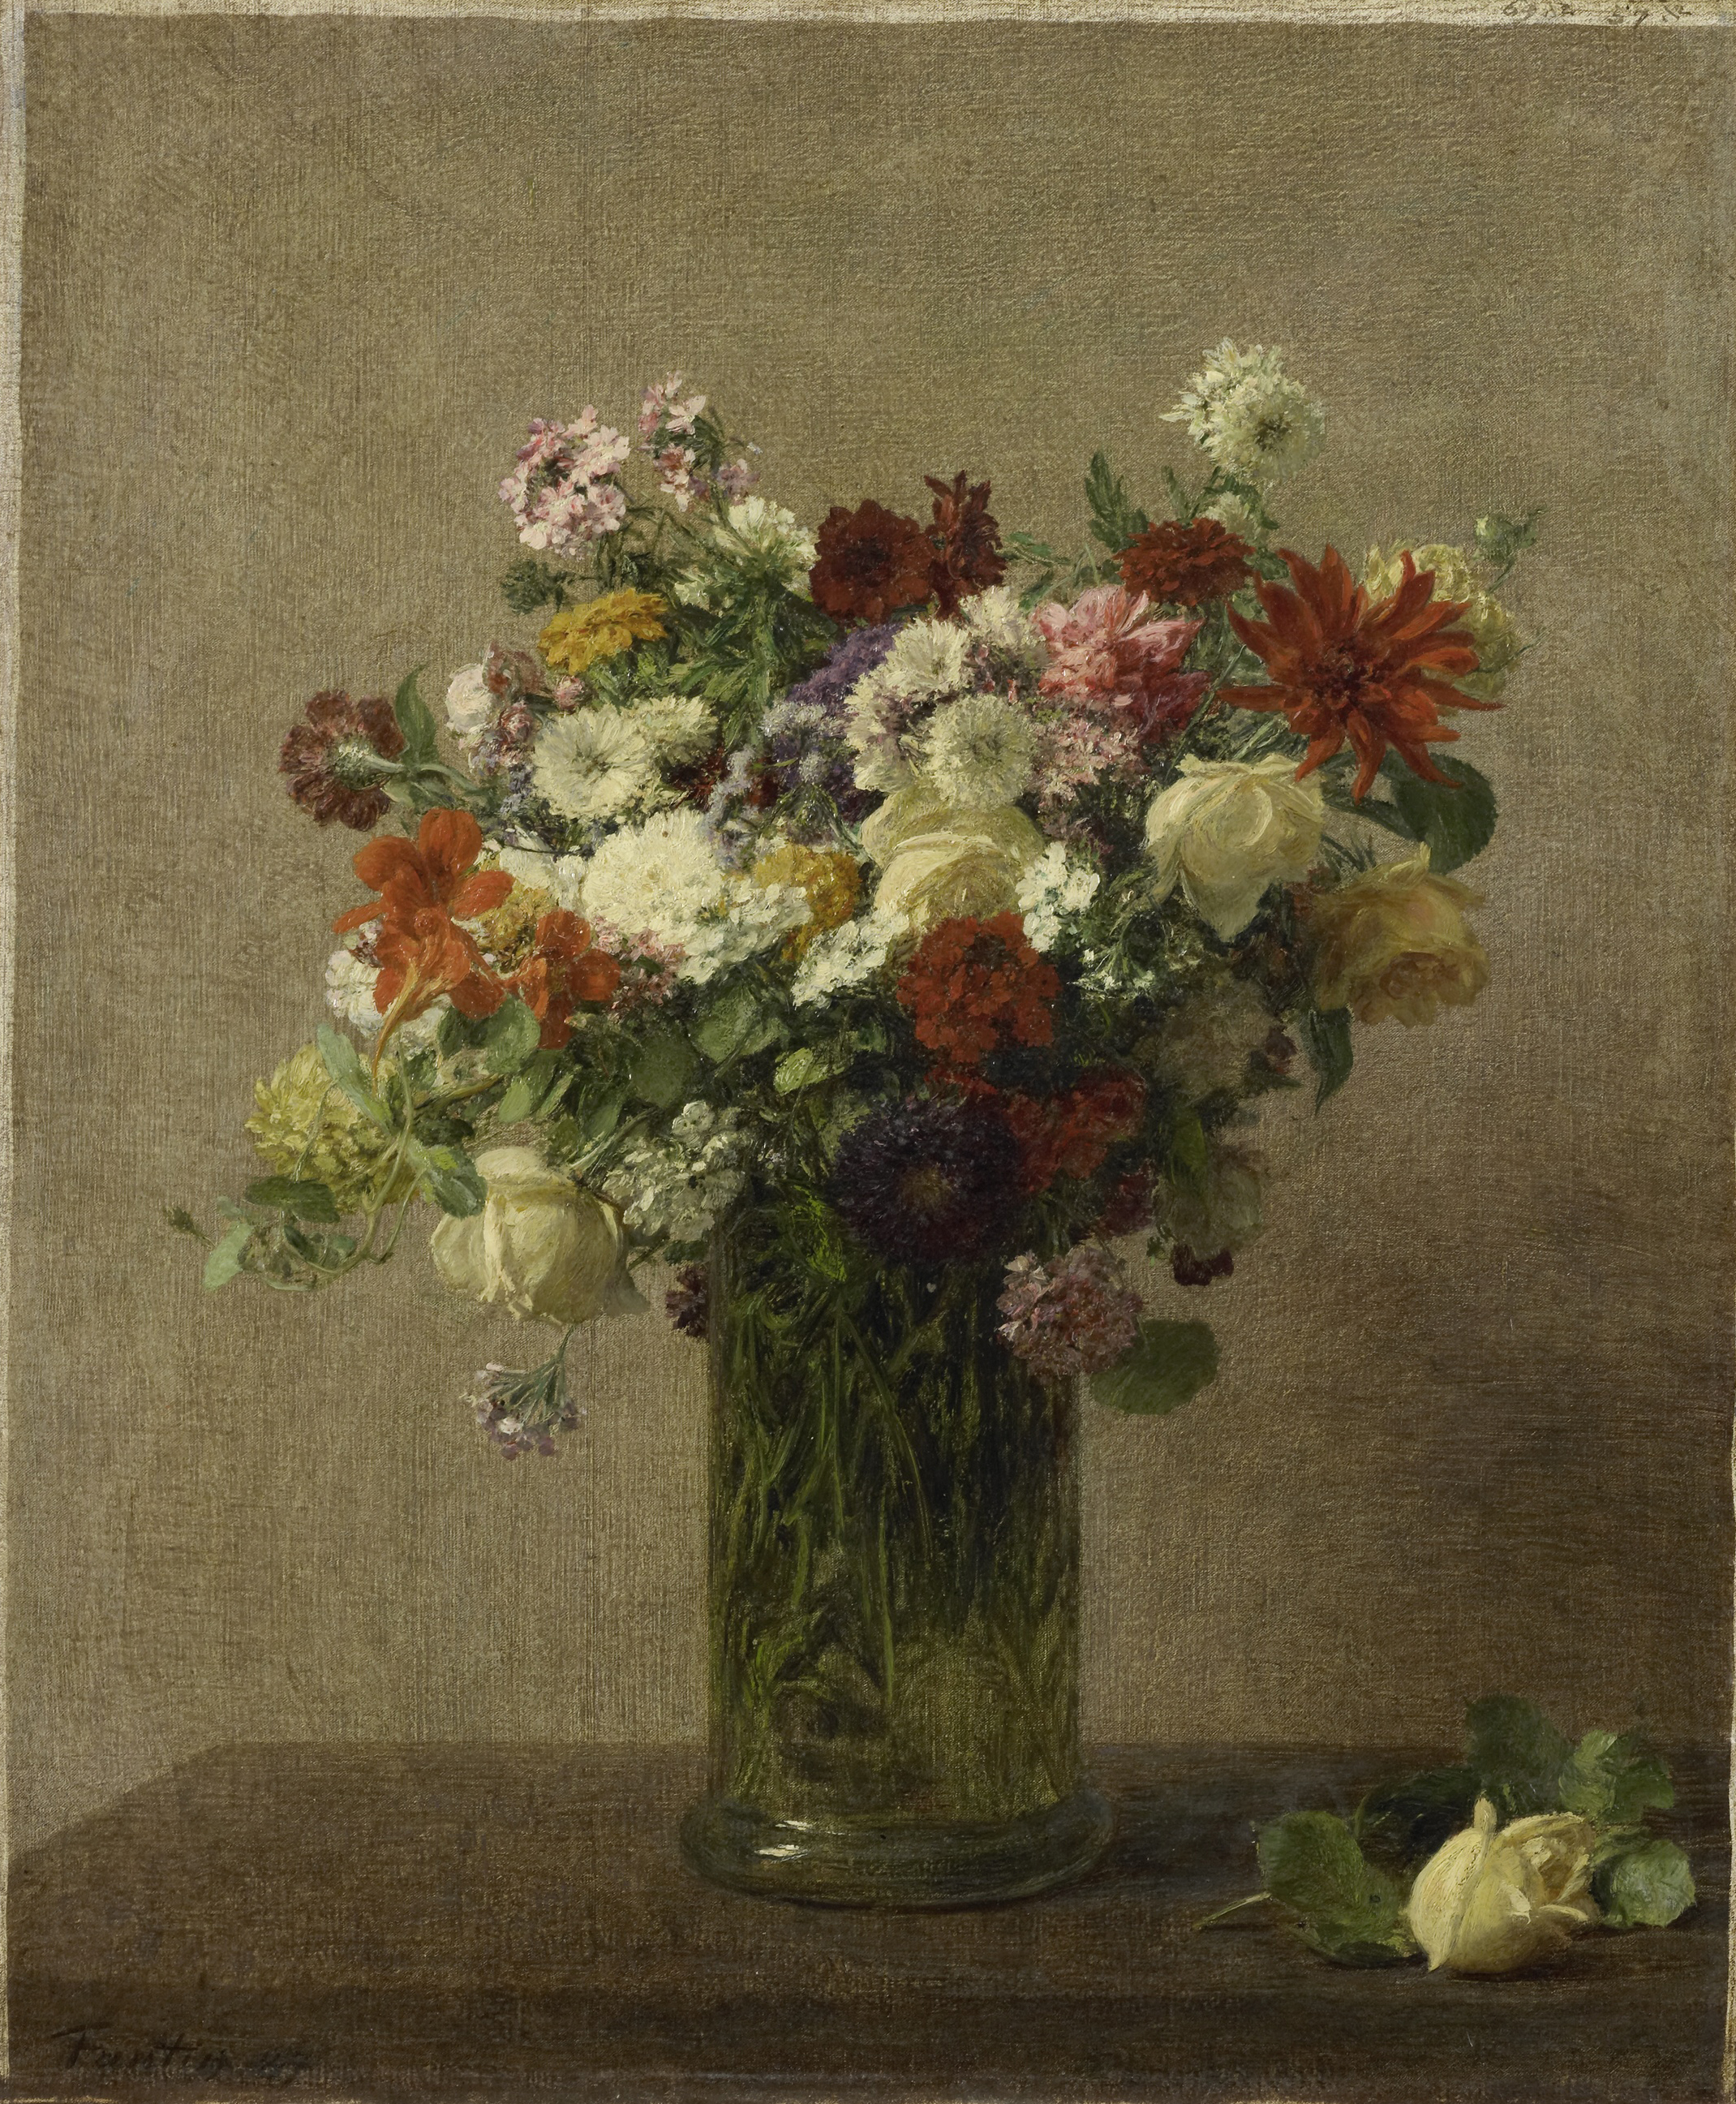 MyFrenchLife™ – MyFrenchLife.org - Paris in January - 2017 - whats on - Henri Fantin-Latour - artist - still life